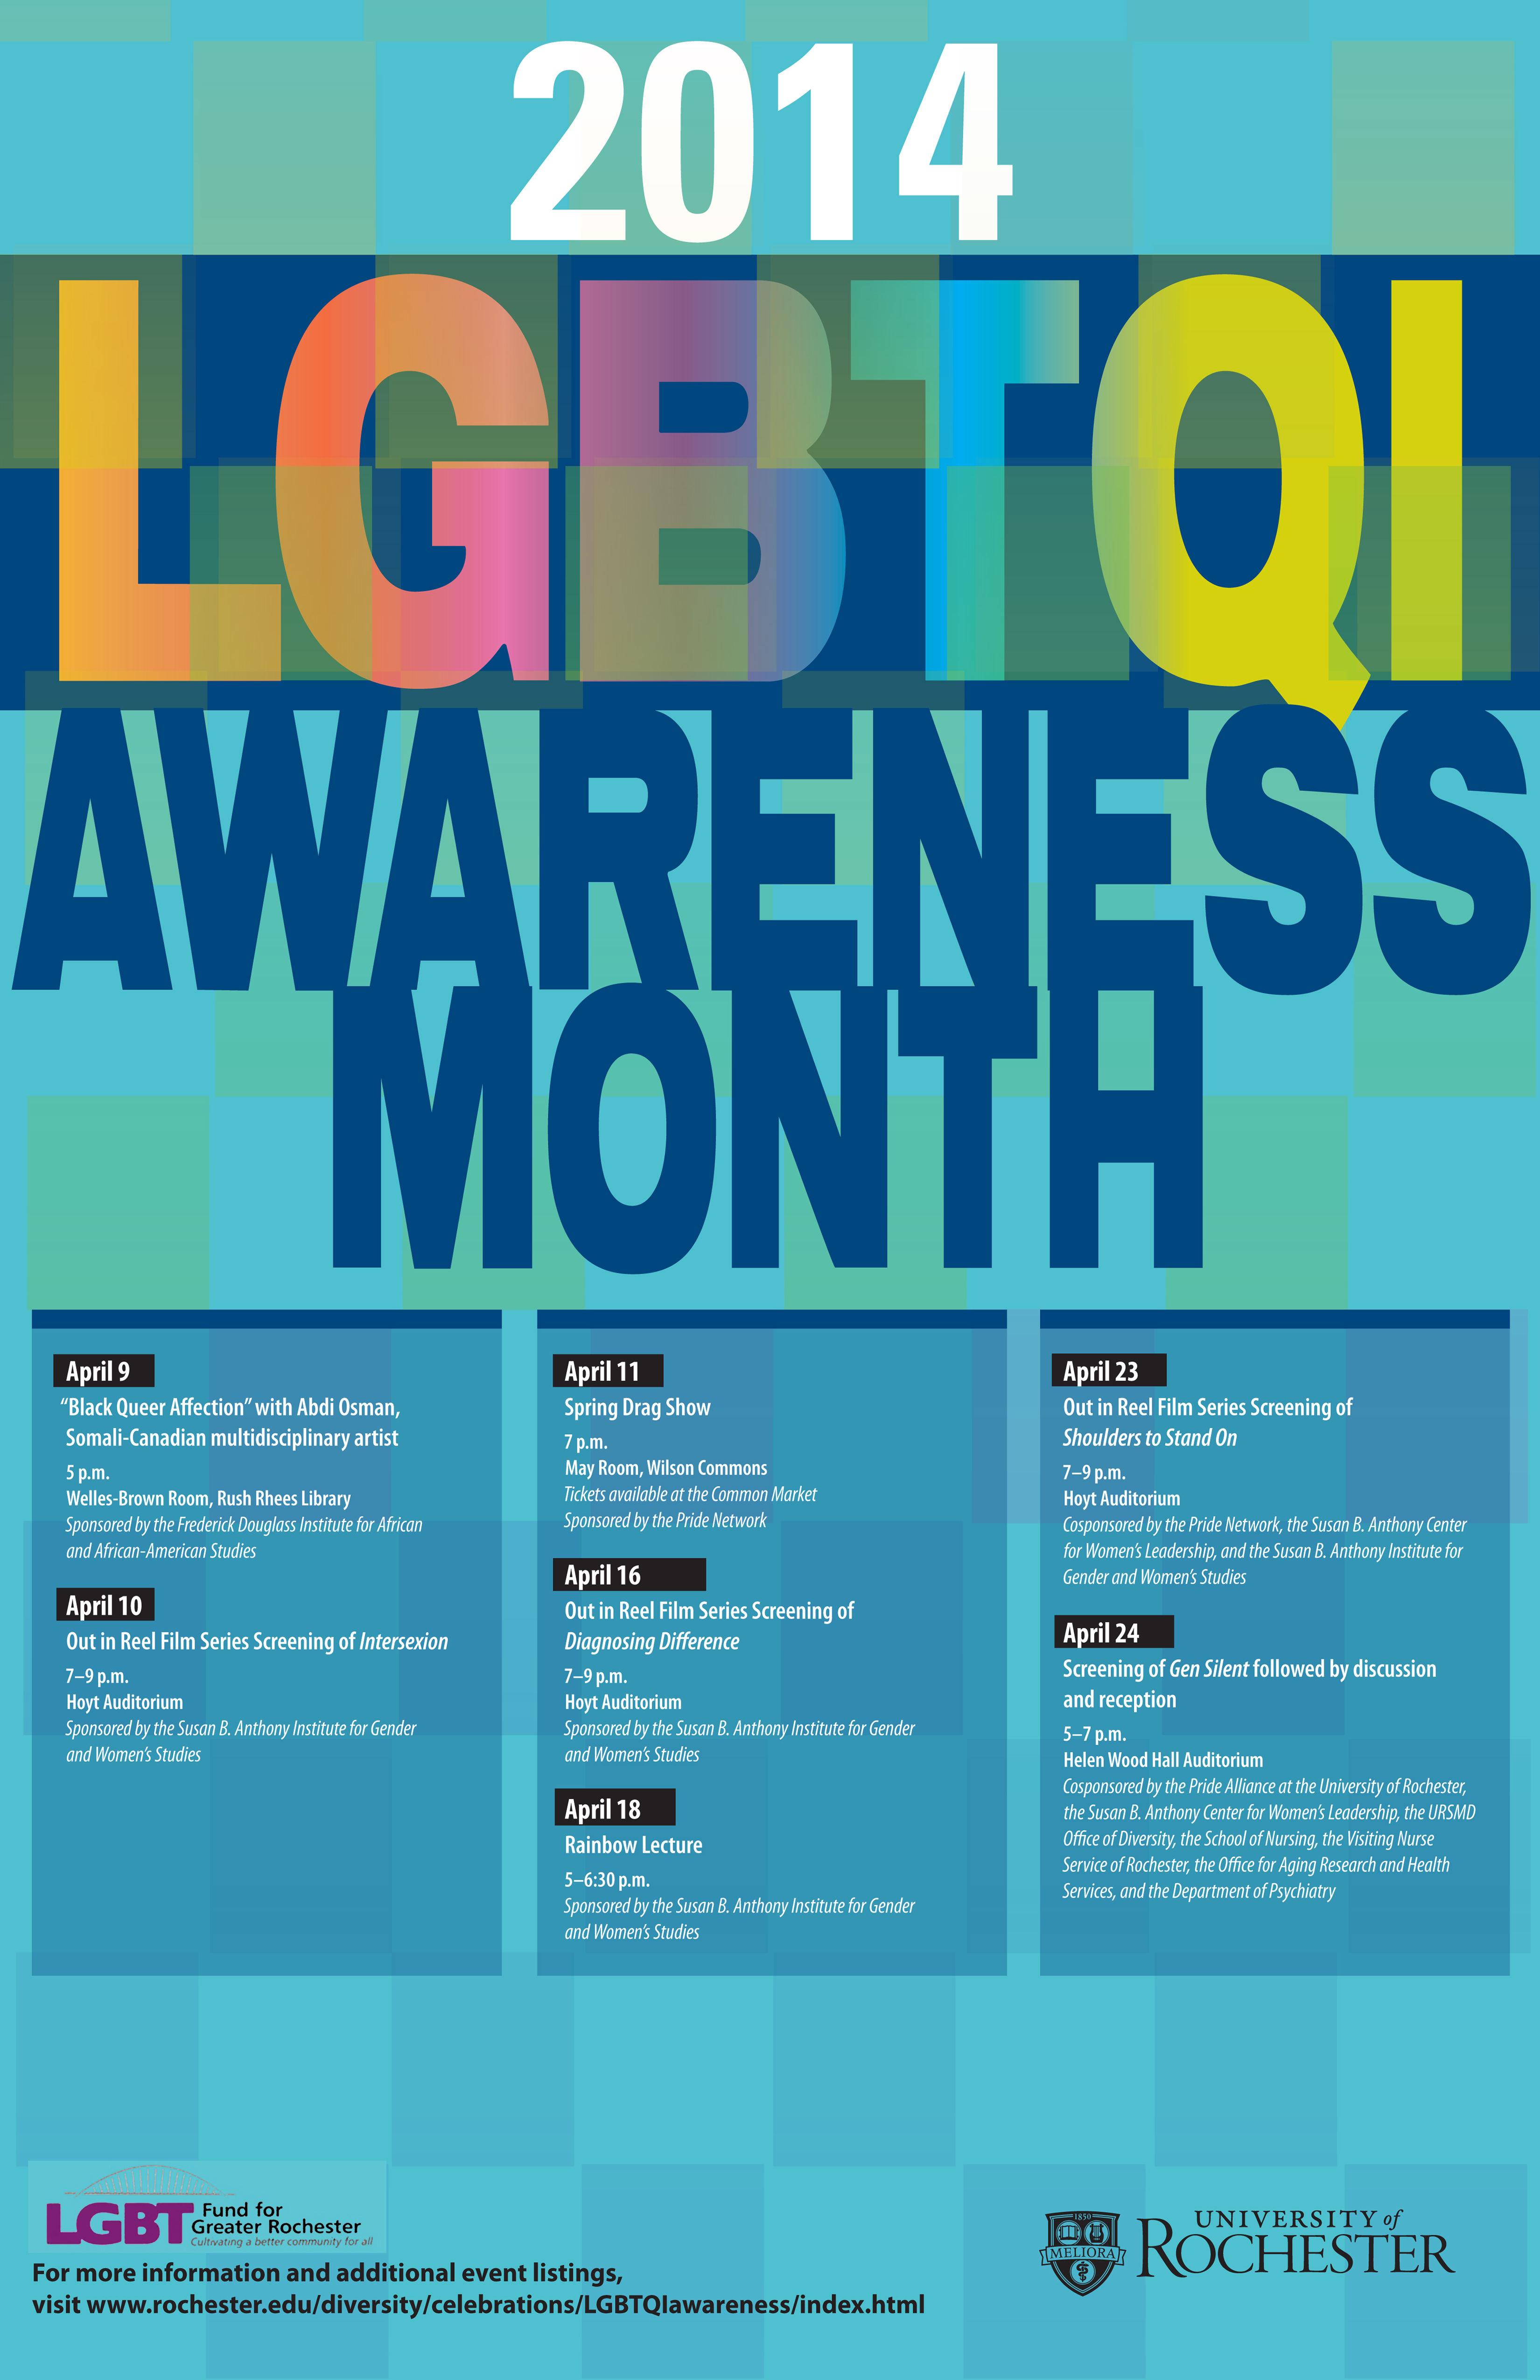 LGBTQI Awareness Month